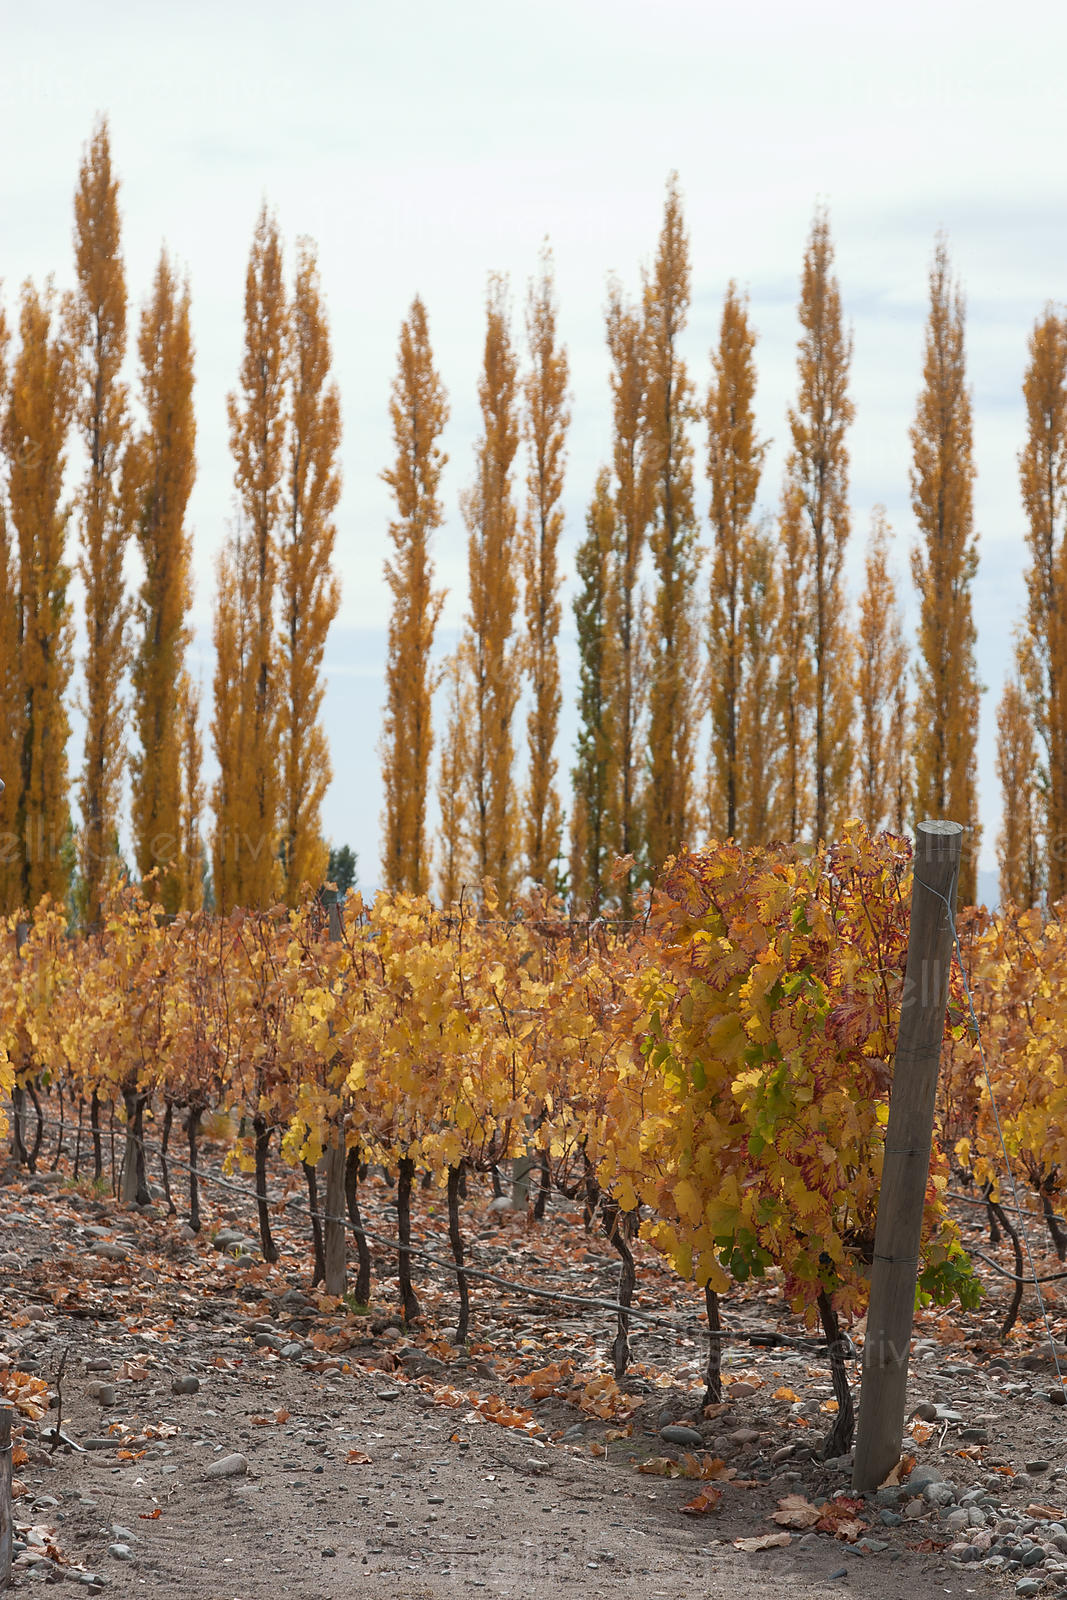 Autumn poplar trees behind one row of vines. Dusty, dirt underneath, golden leaves. Sky. One pole at end of vineyard. Portrai...